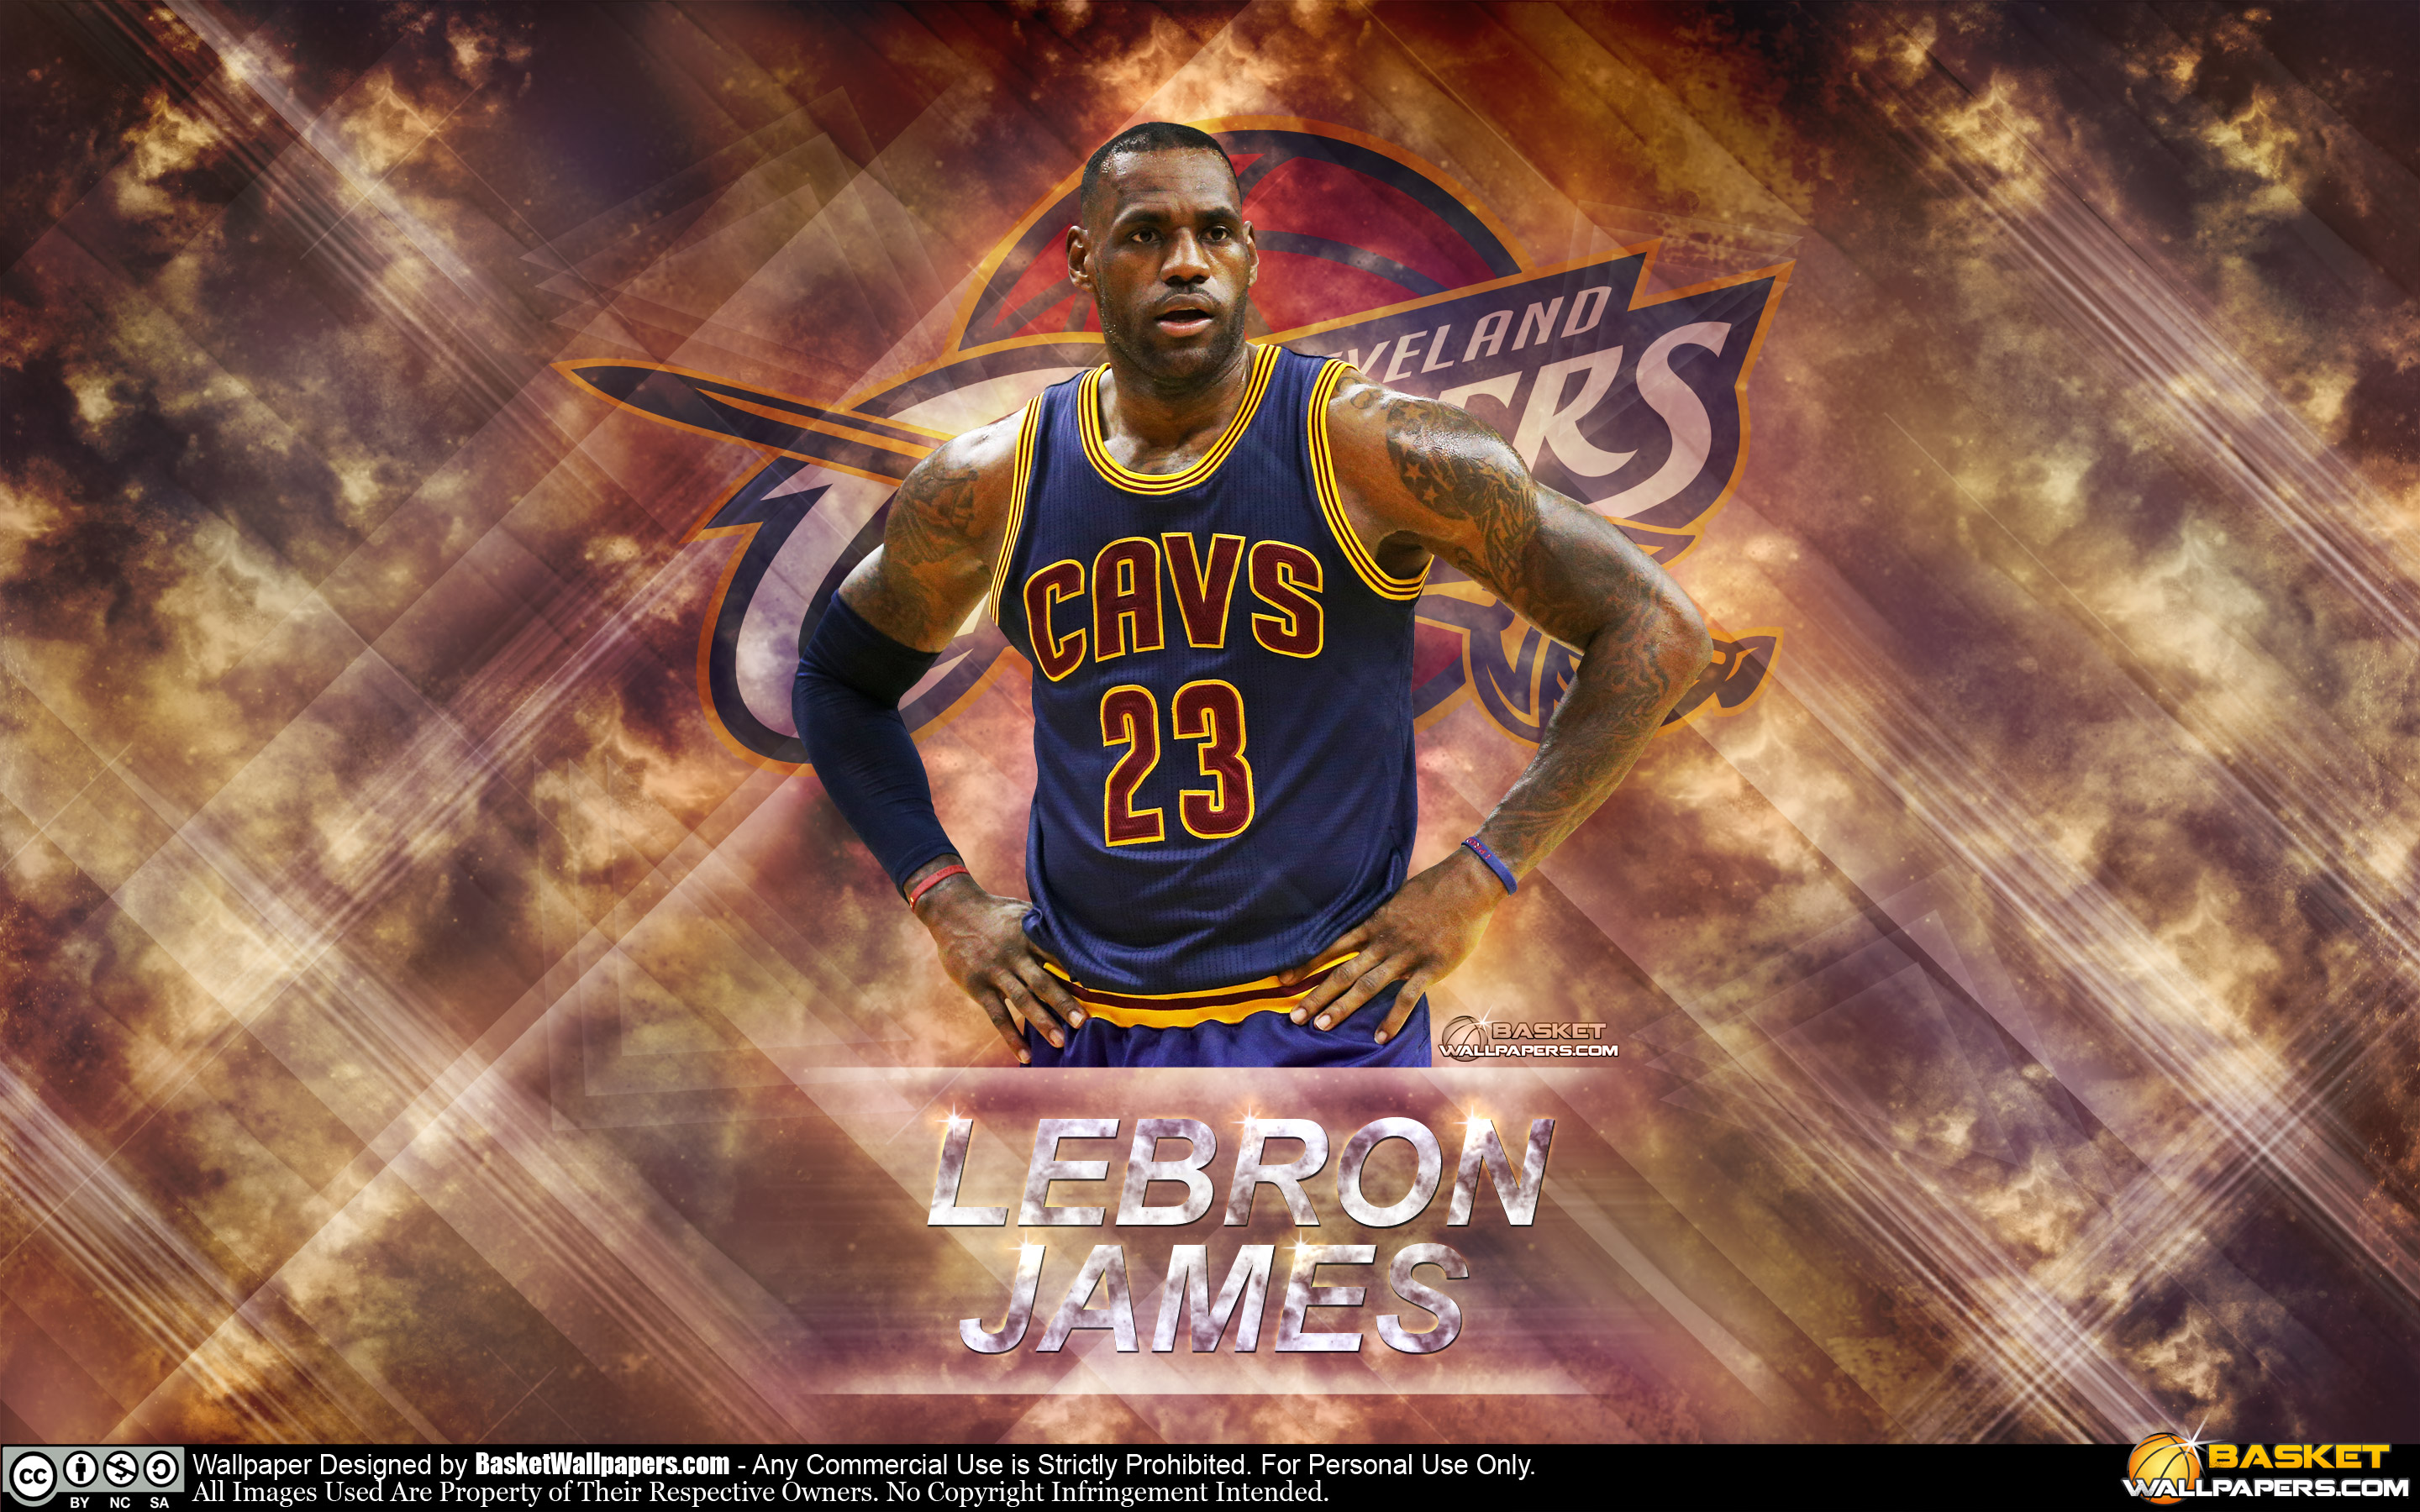 Lebron James Cavs Wallpapers Widescreen On High Resolution - Lebron James Background Cavs , HD Wallpaper & Backgrounds